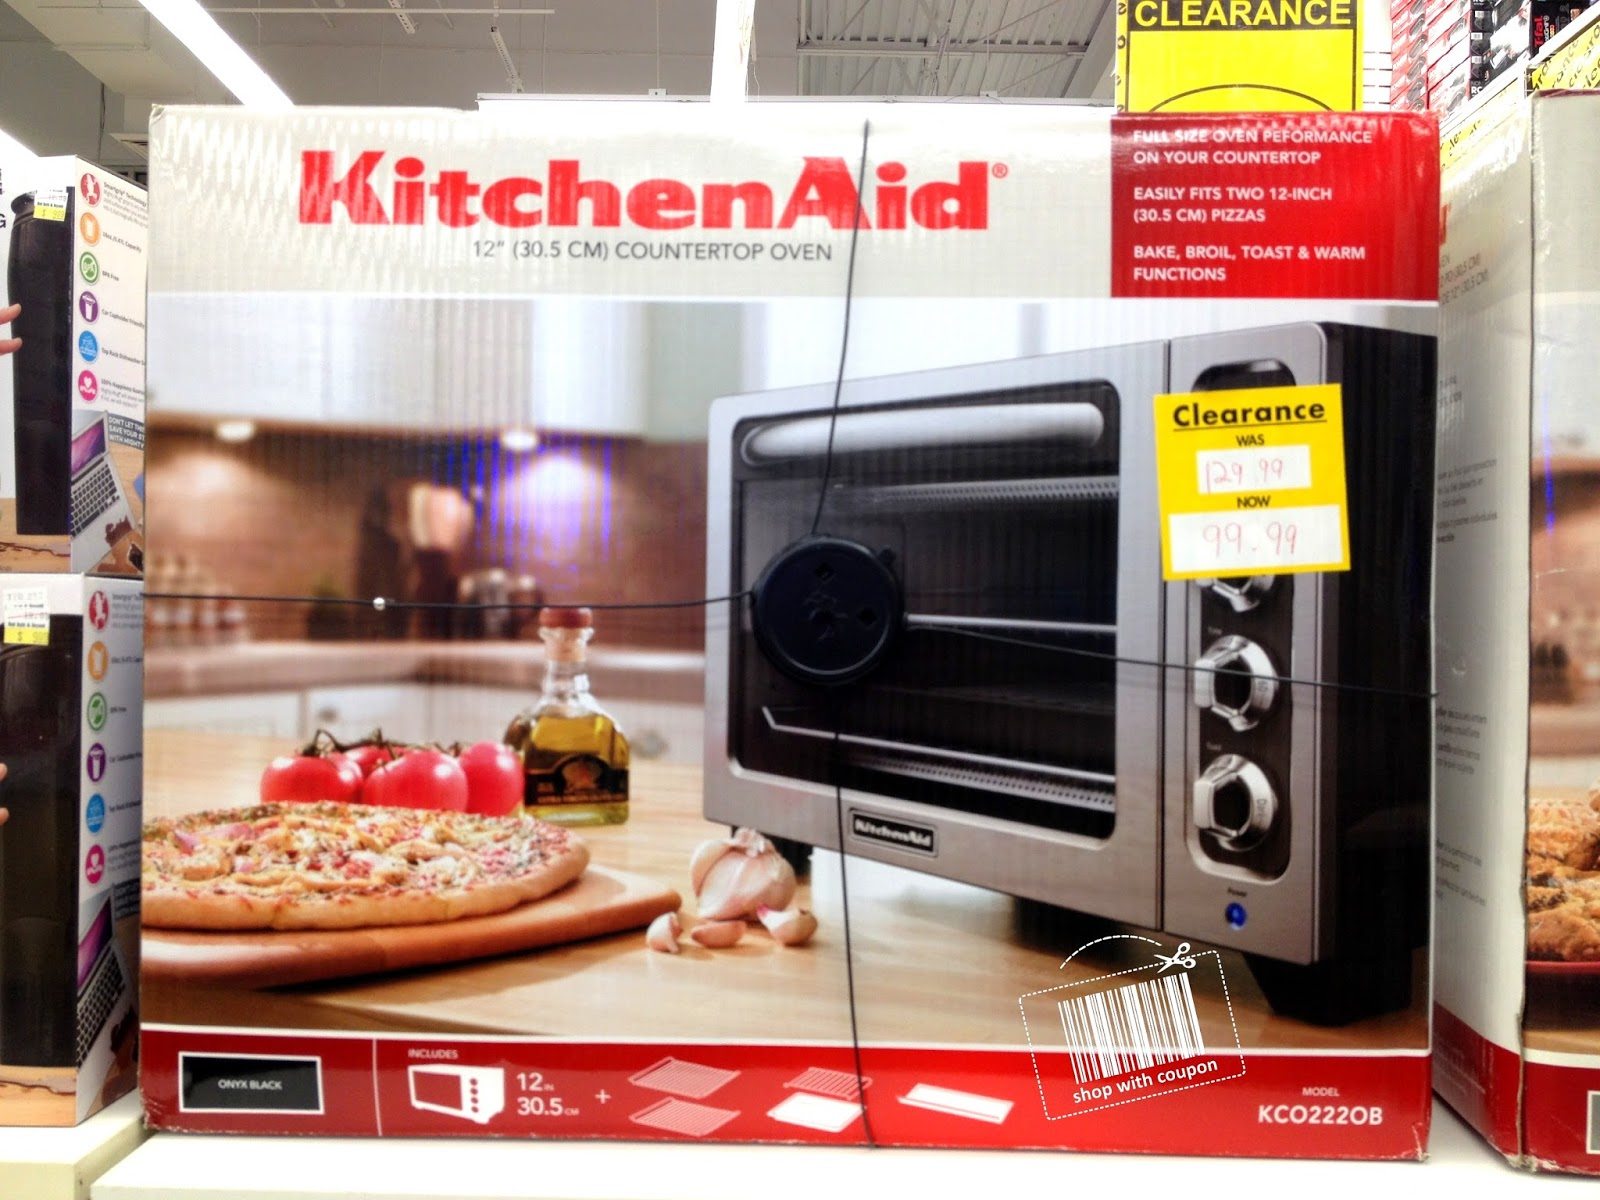 shop with coupon Bed Bath Beyond Clearance Finds KitchenAid